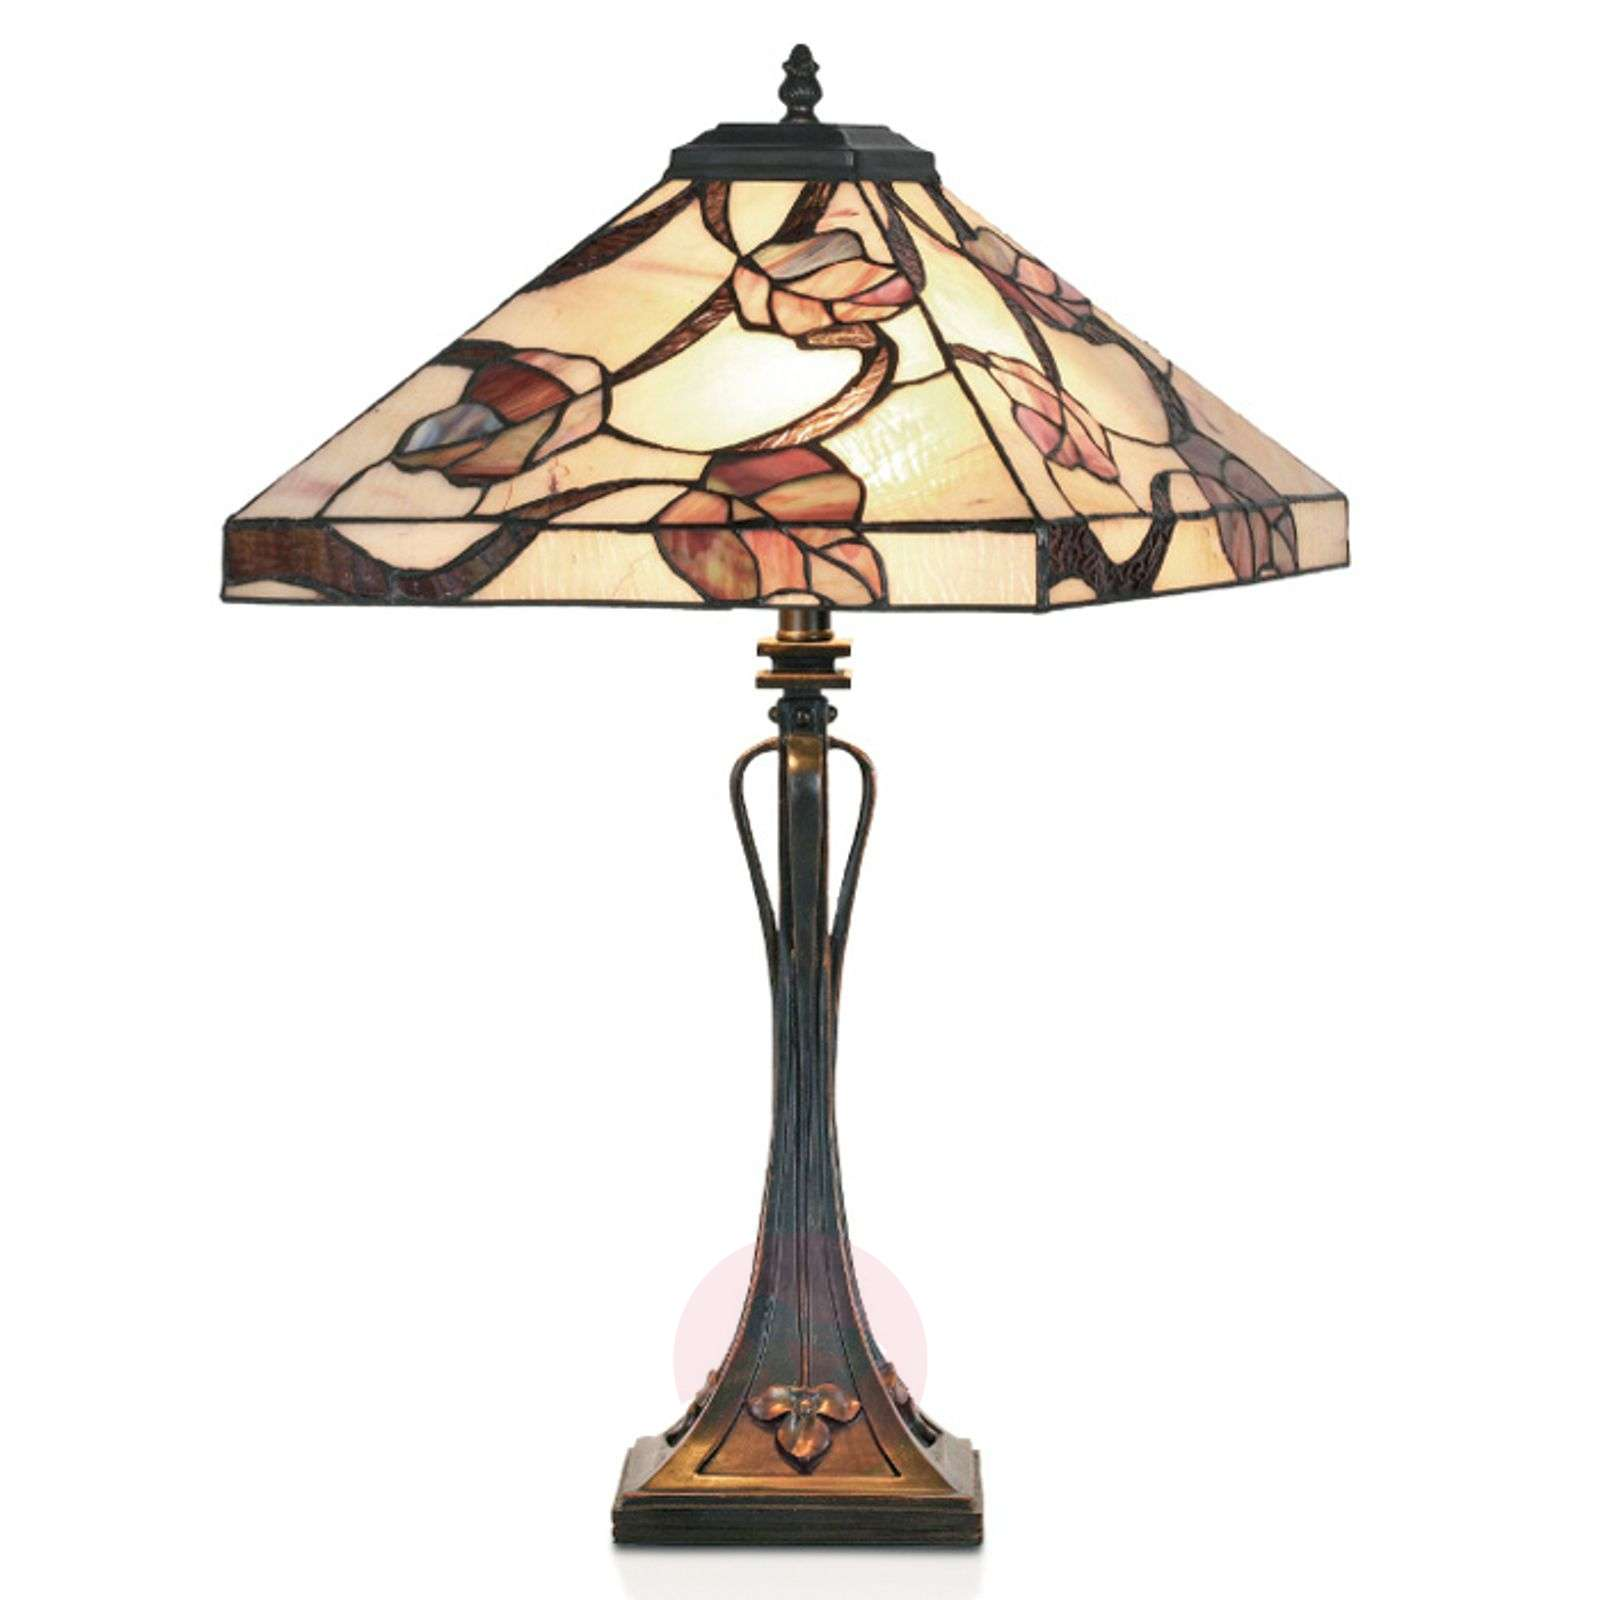 Table lamp APPOLONIA in the Tiffany style-1032187-01